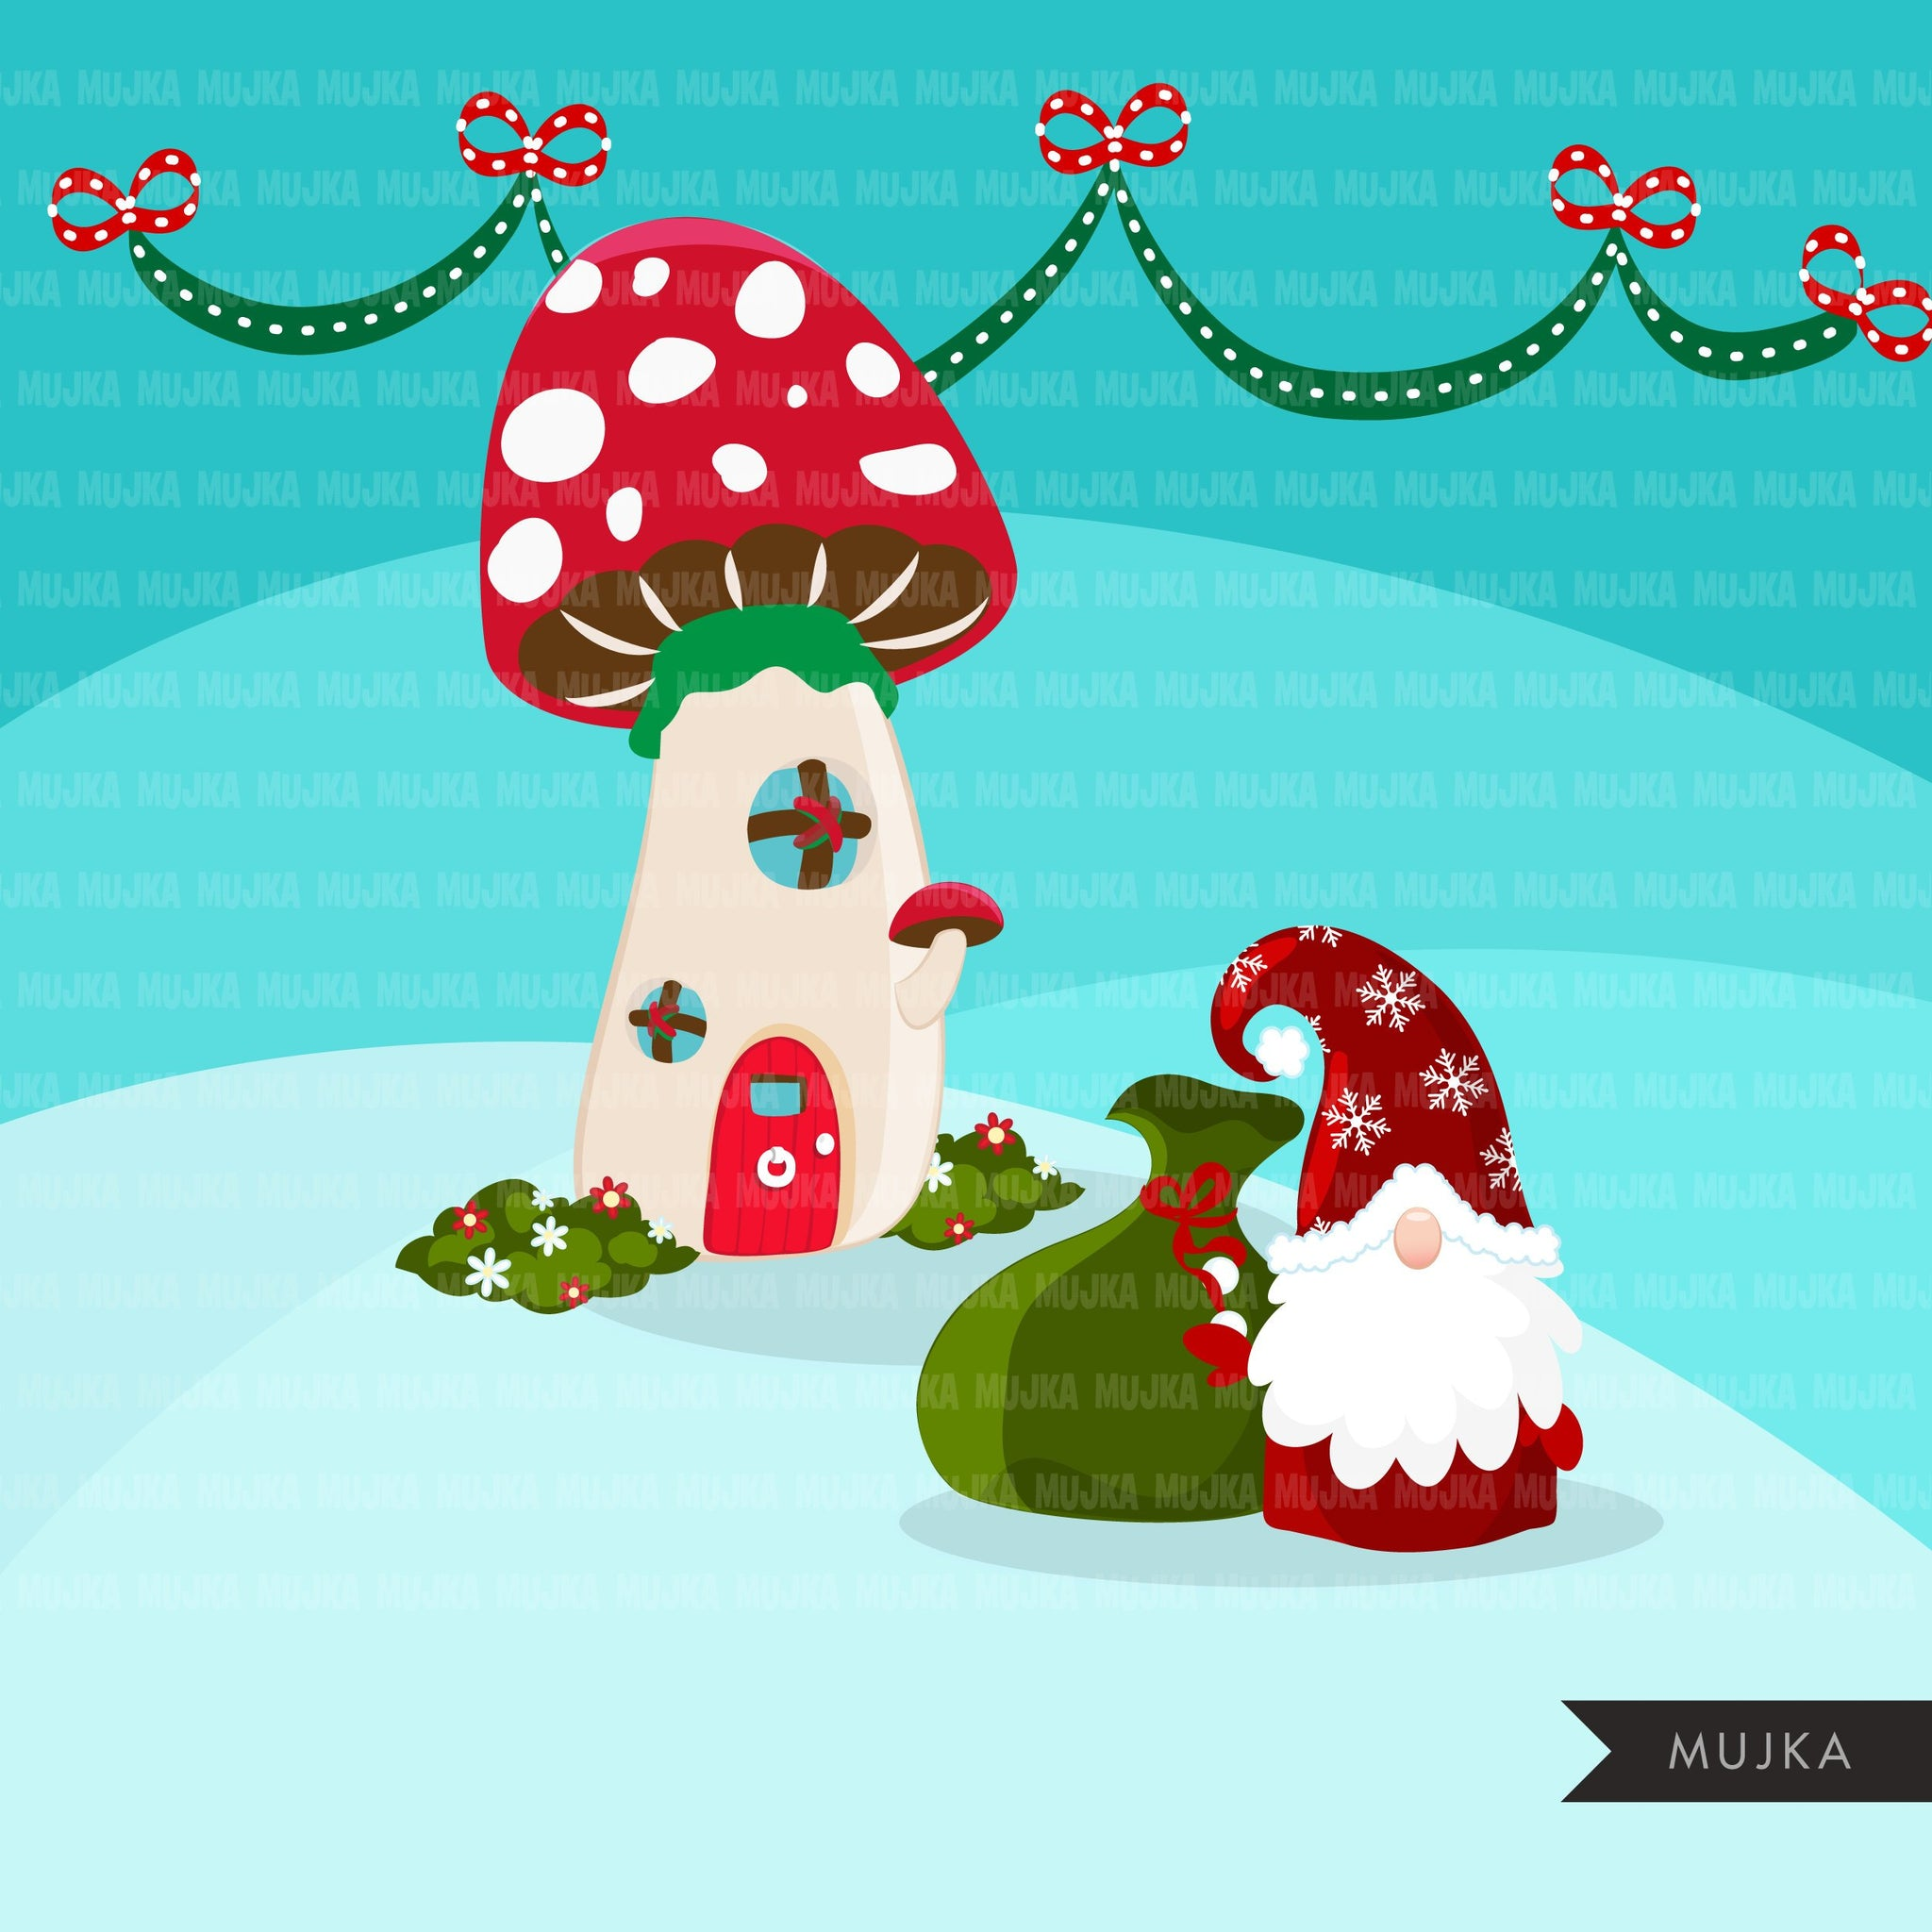 Christmas gnomes village Clipart, Mushroom homes Scandinavian Gnome graphics, illustration, Danish, Nordic Holiday, noel, cute characters